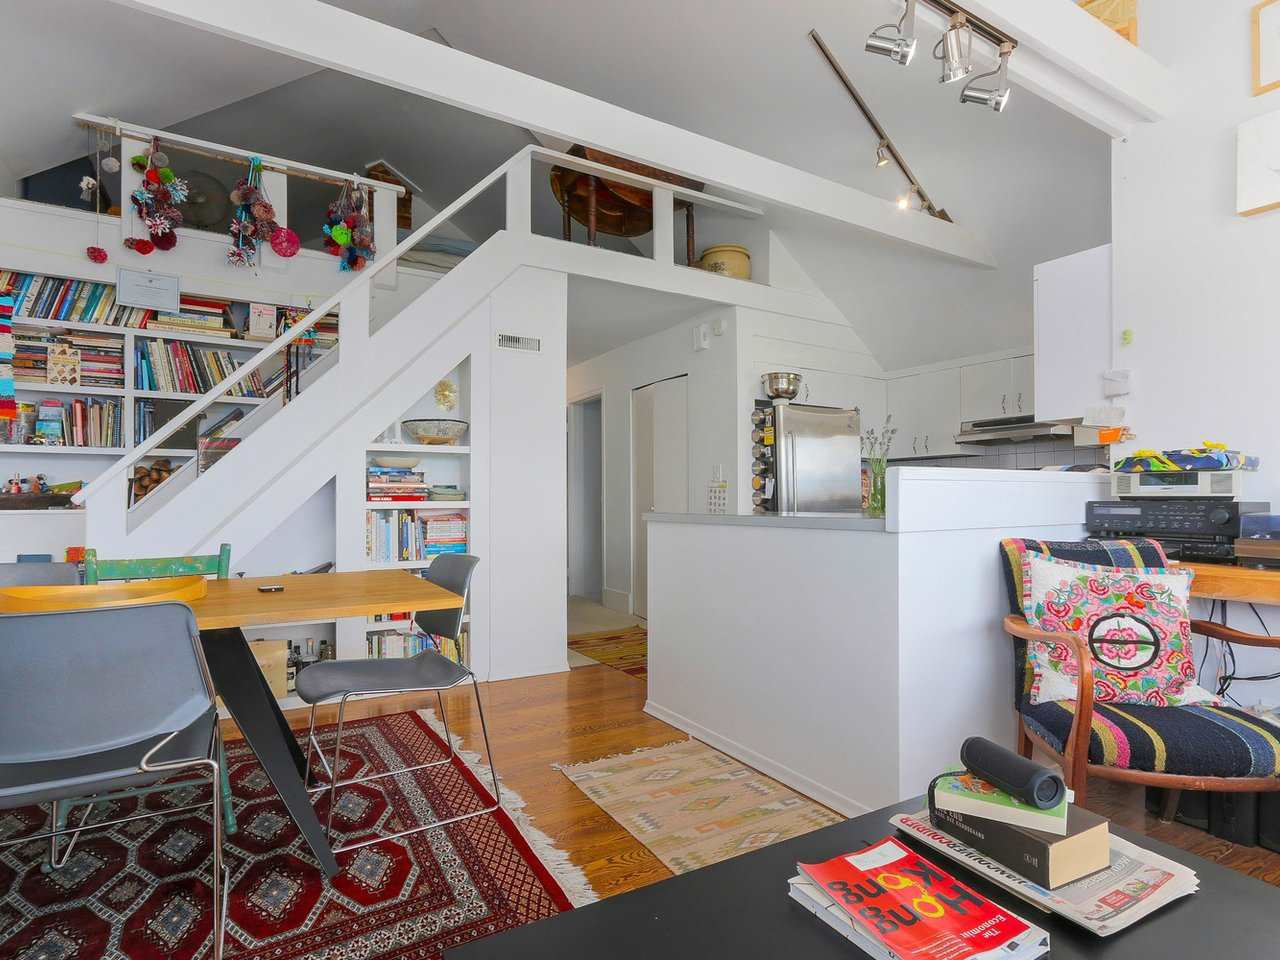 """Photo 8: Photos: 2610 W 10TH Avenue in Vancouver: Kitsilano House for sale in """"Kitsilano"""" (Vancouver West)  : MLS®# R2471992"""